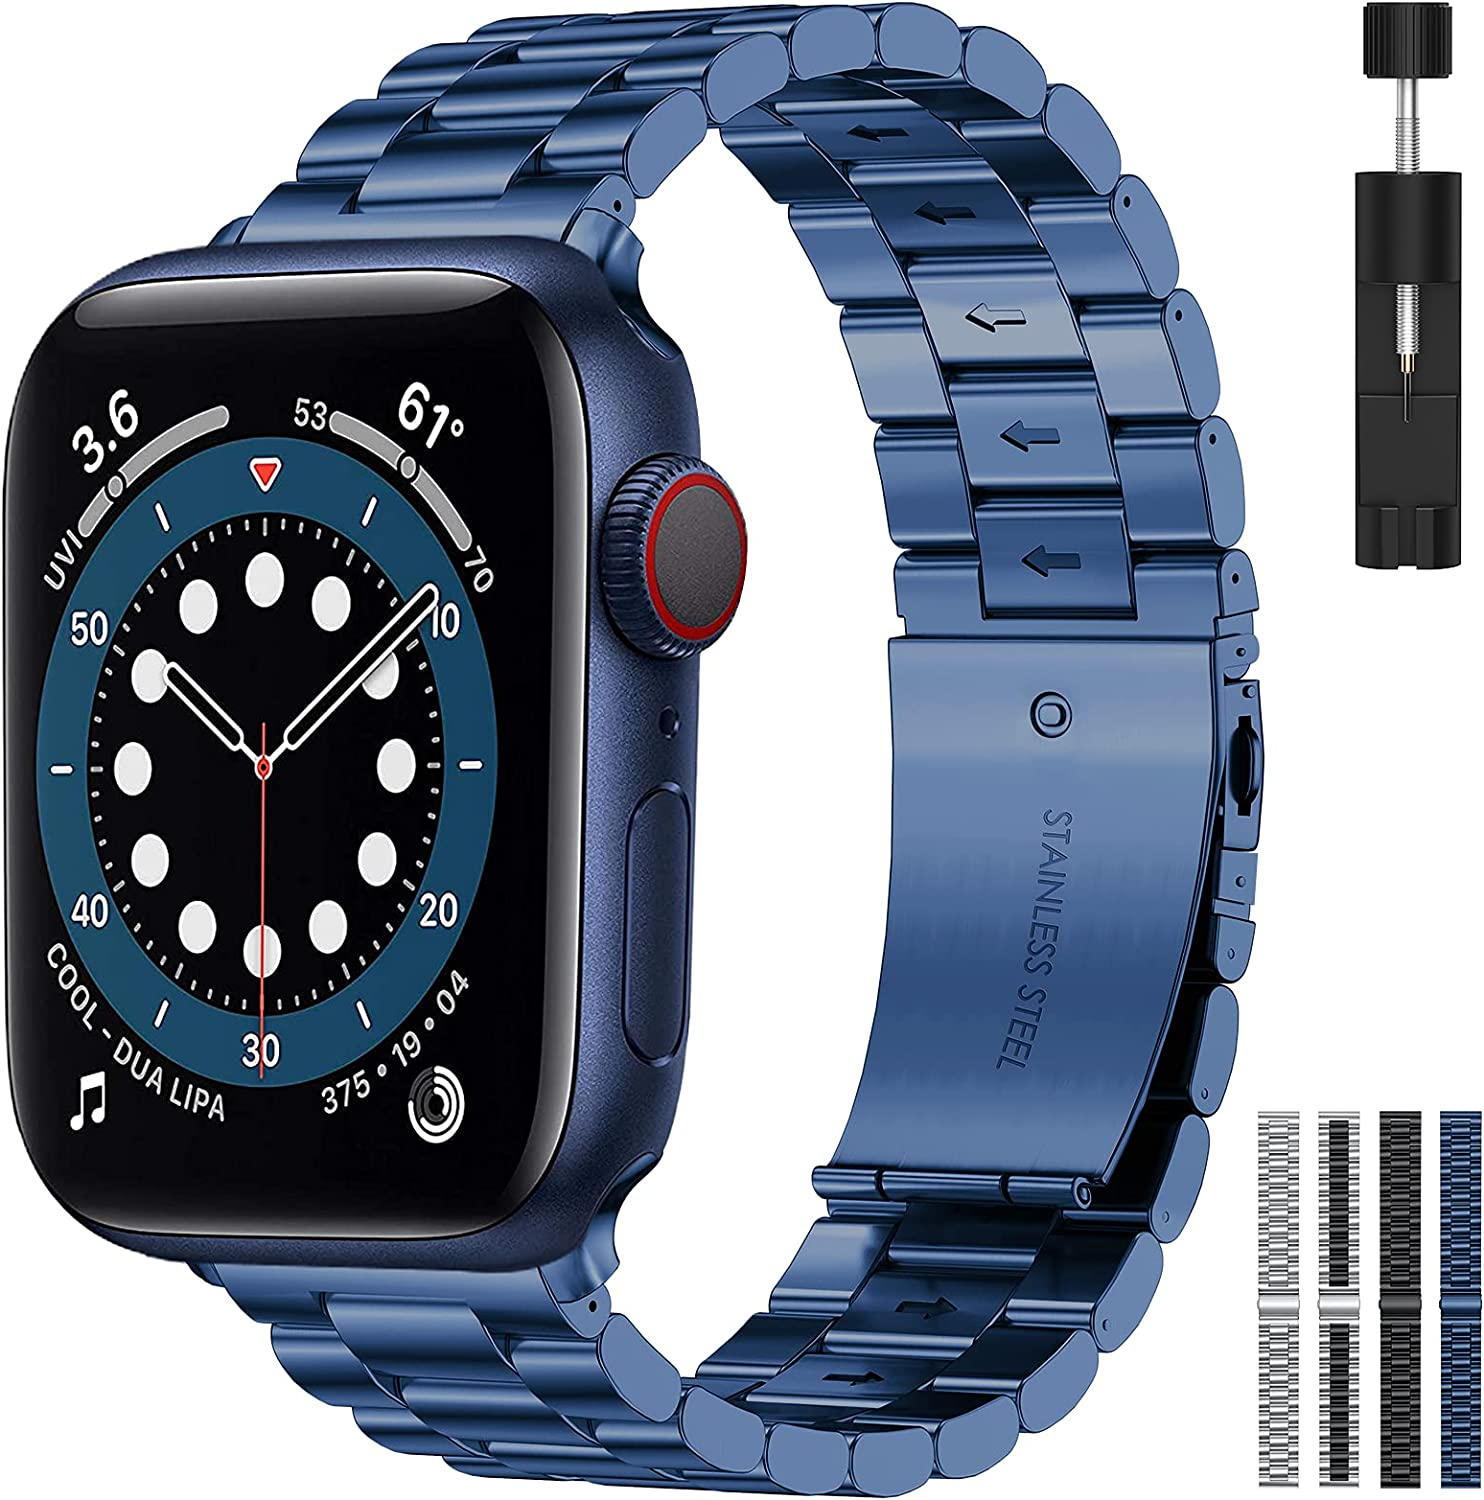 RARF Metal Band Compatible with Apple Watch 38mm 40mm 42mm 44mm for Women Men, Replacement Stainless Steel Strap Wristband Bracelet Compatible with iWatch Series SE/6/5/4/3/2/1(Blue, 42/44mm)